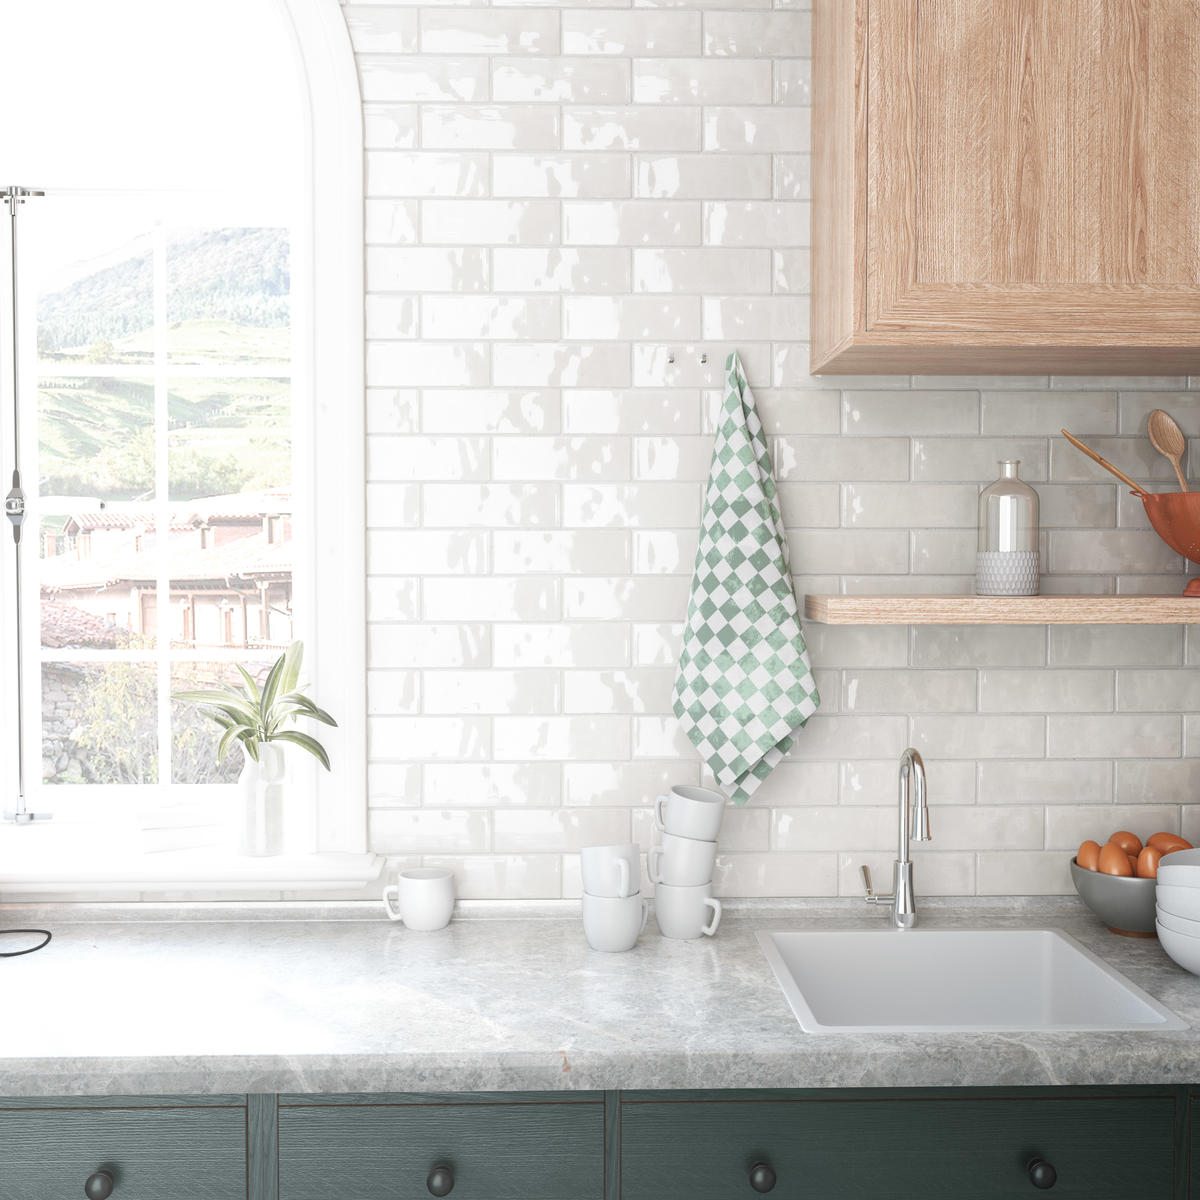 The Passion tile from Emser Tile